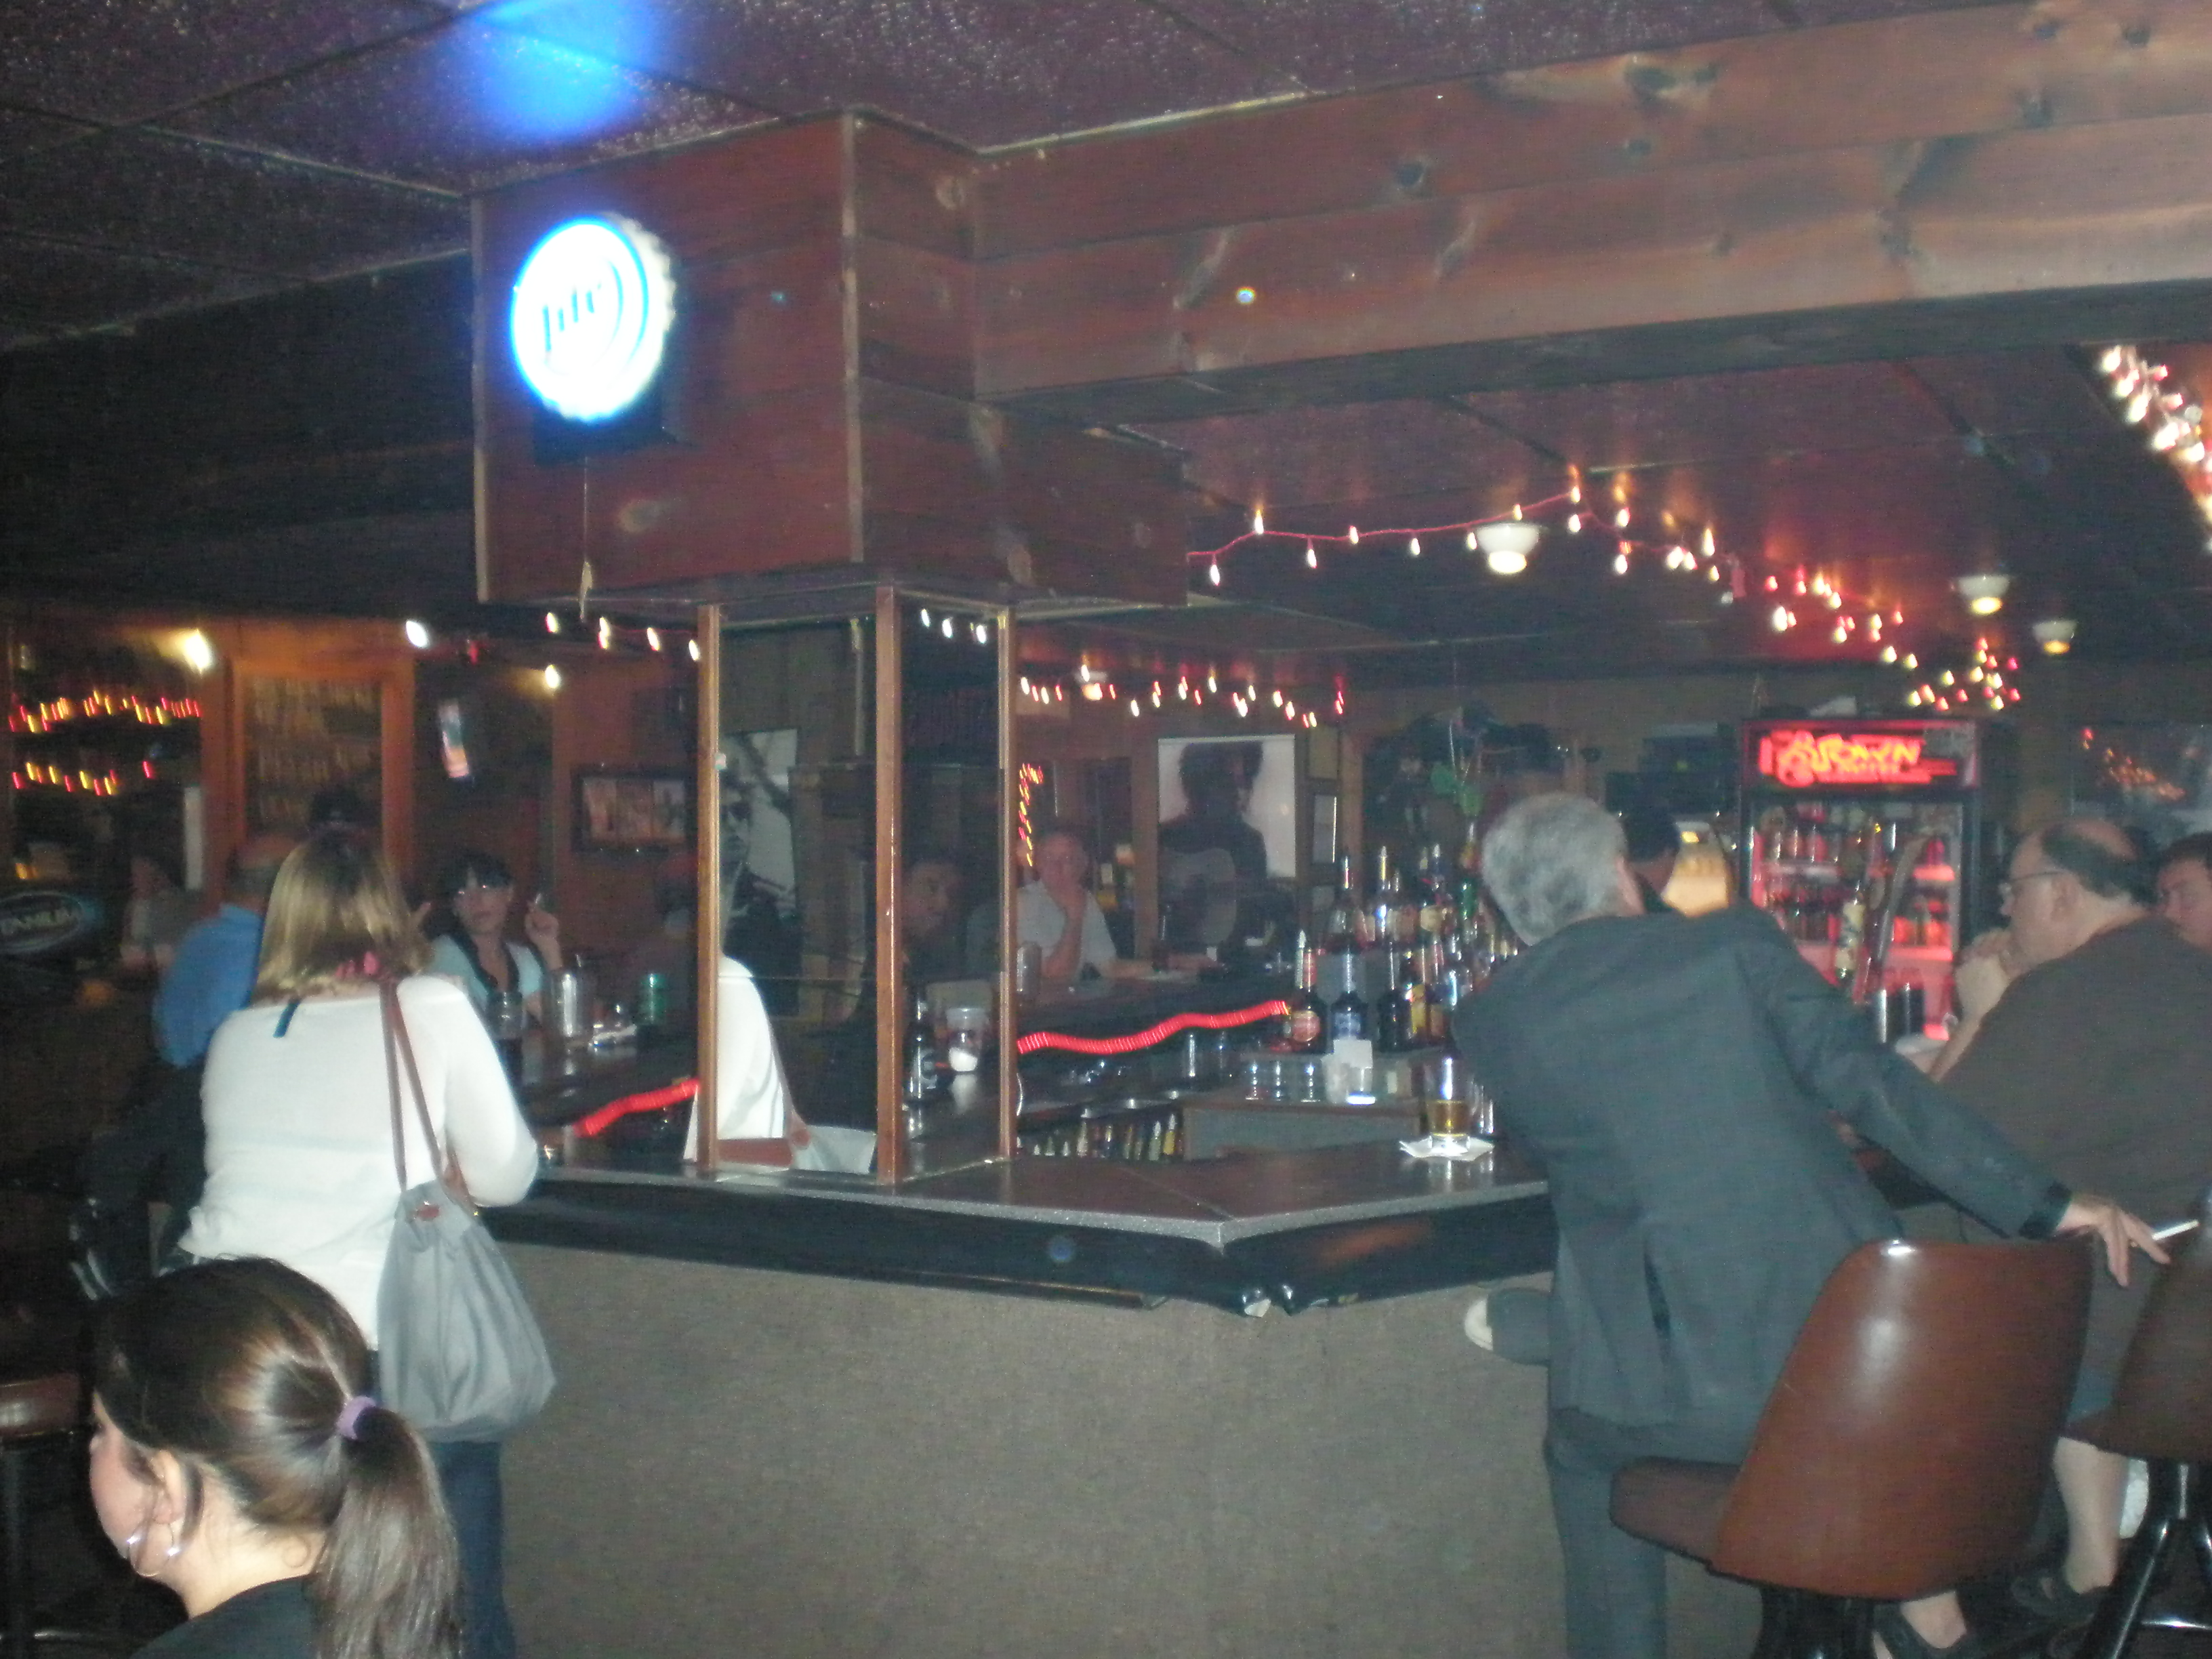 On Tuesday September 16 2008 Our Group Attended Open Mic Night At The Brown Hotel Water St Of Indiana Pa From 9 00pm 11